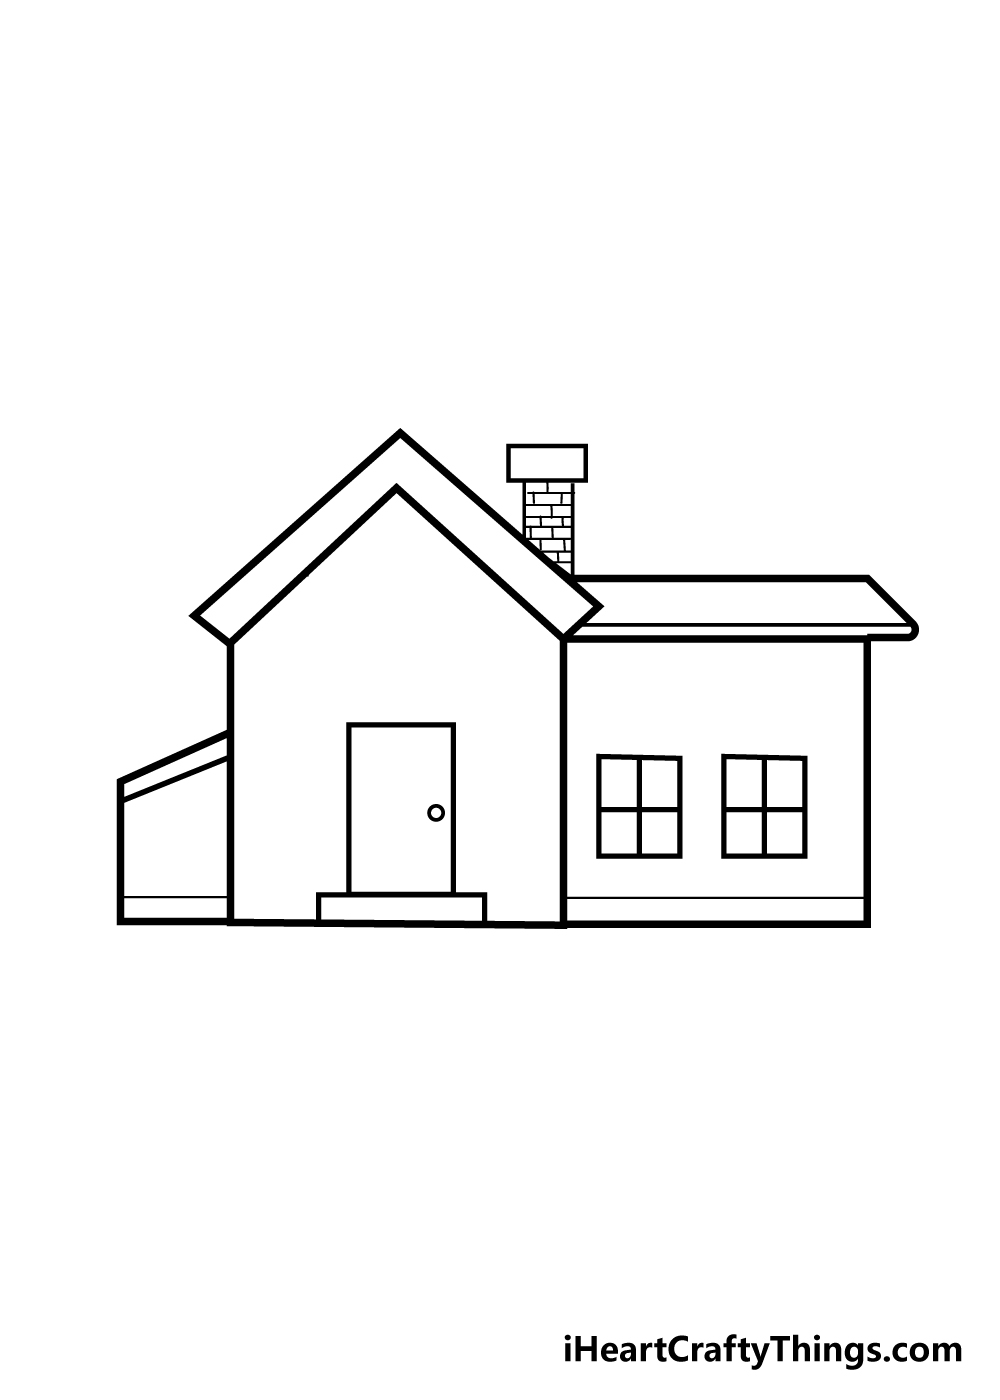 house drawing step 6